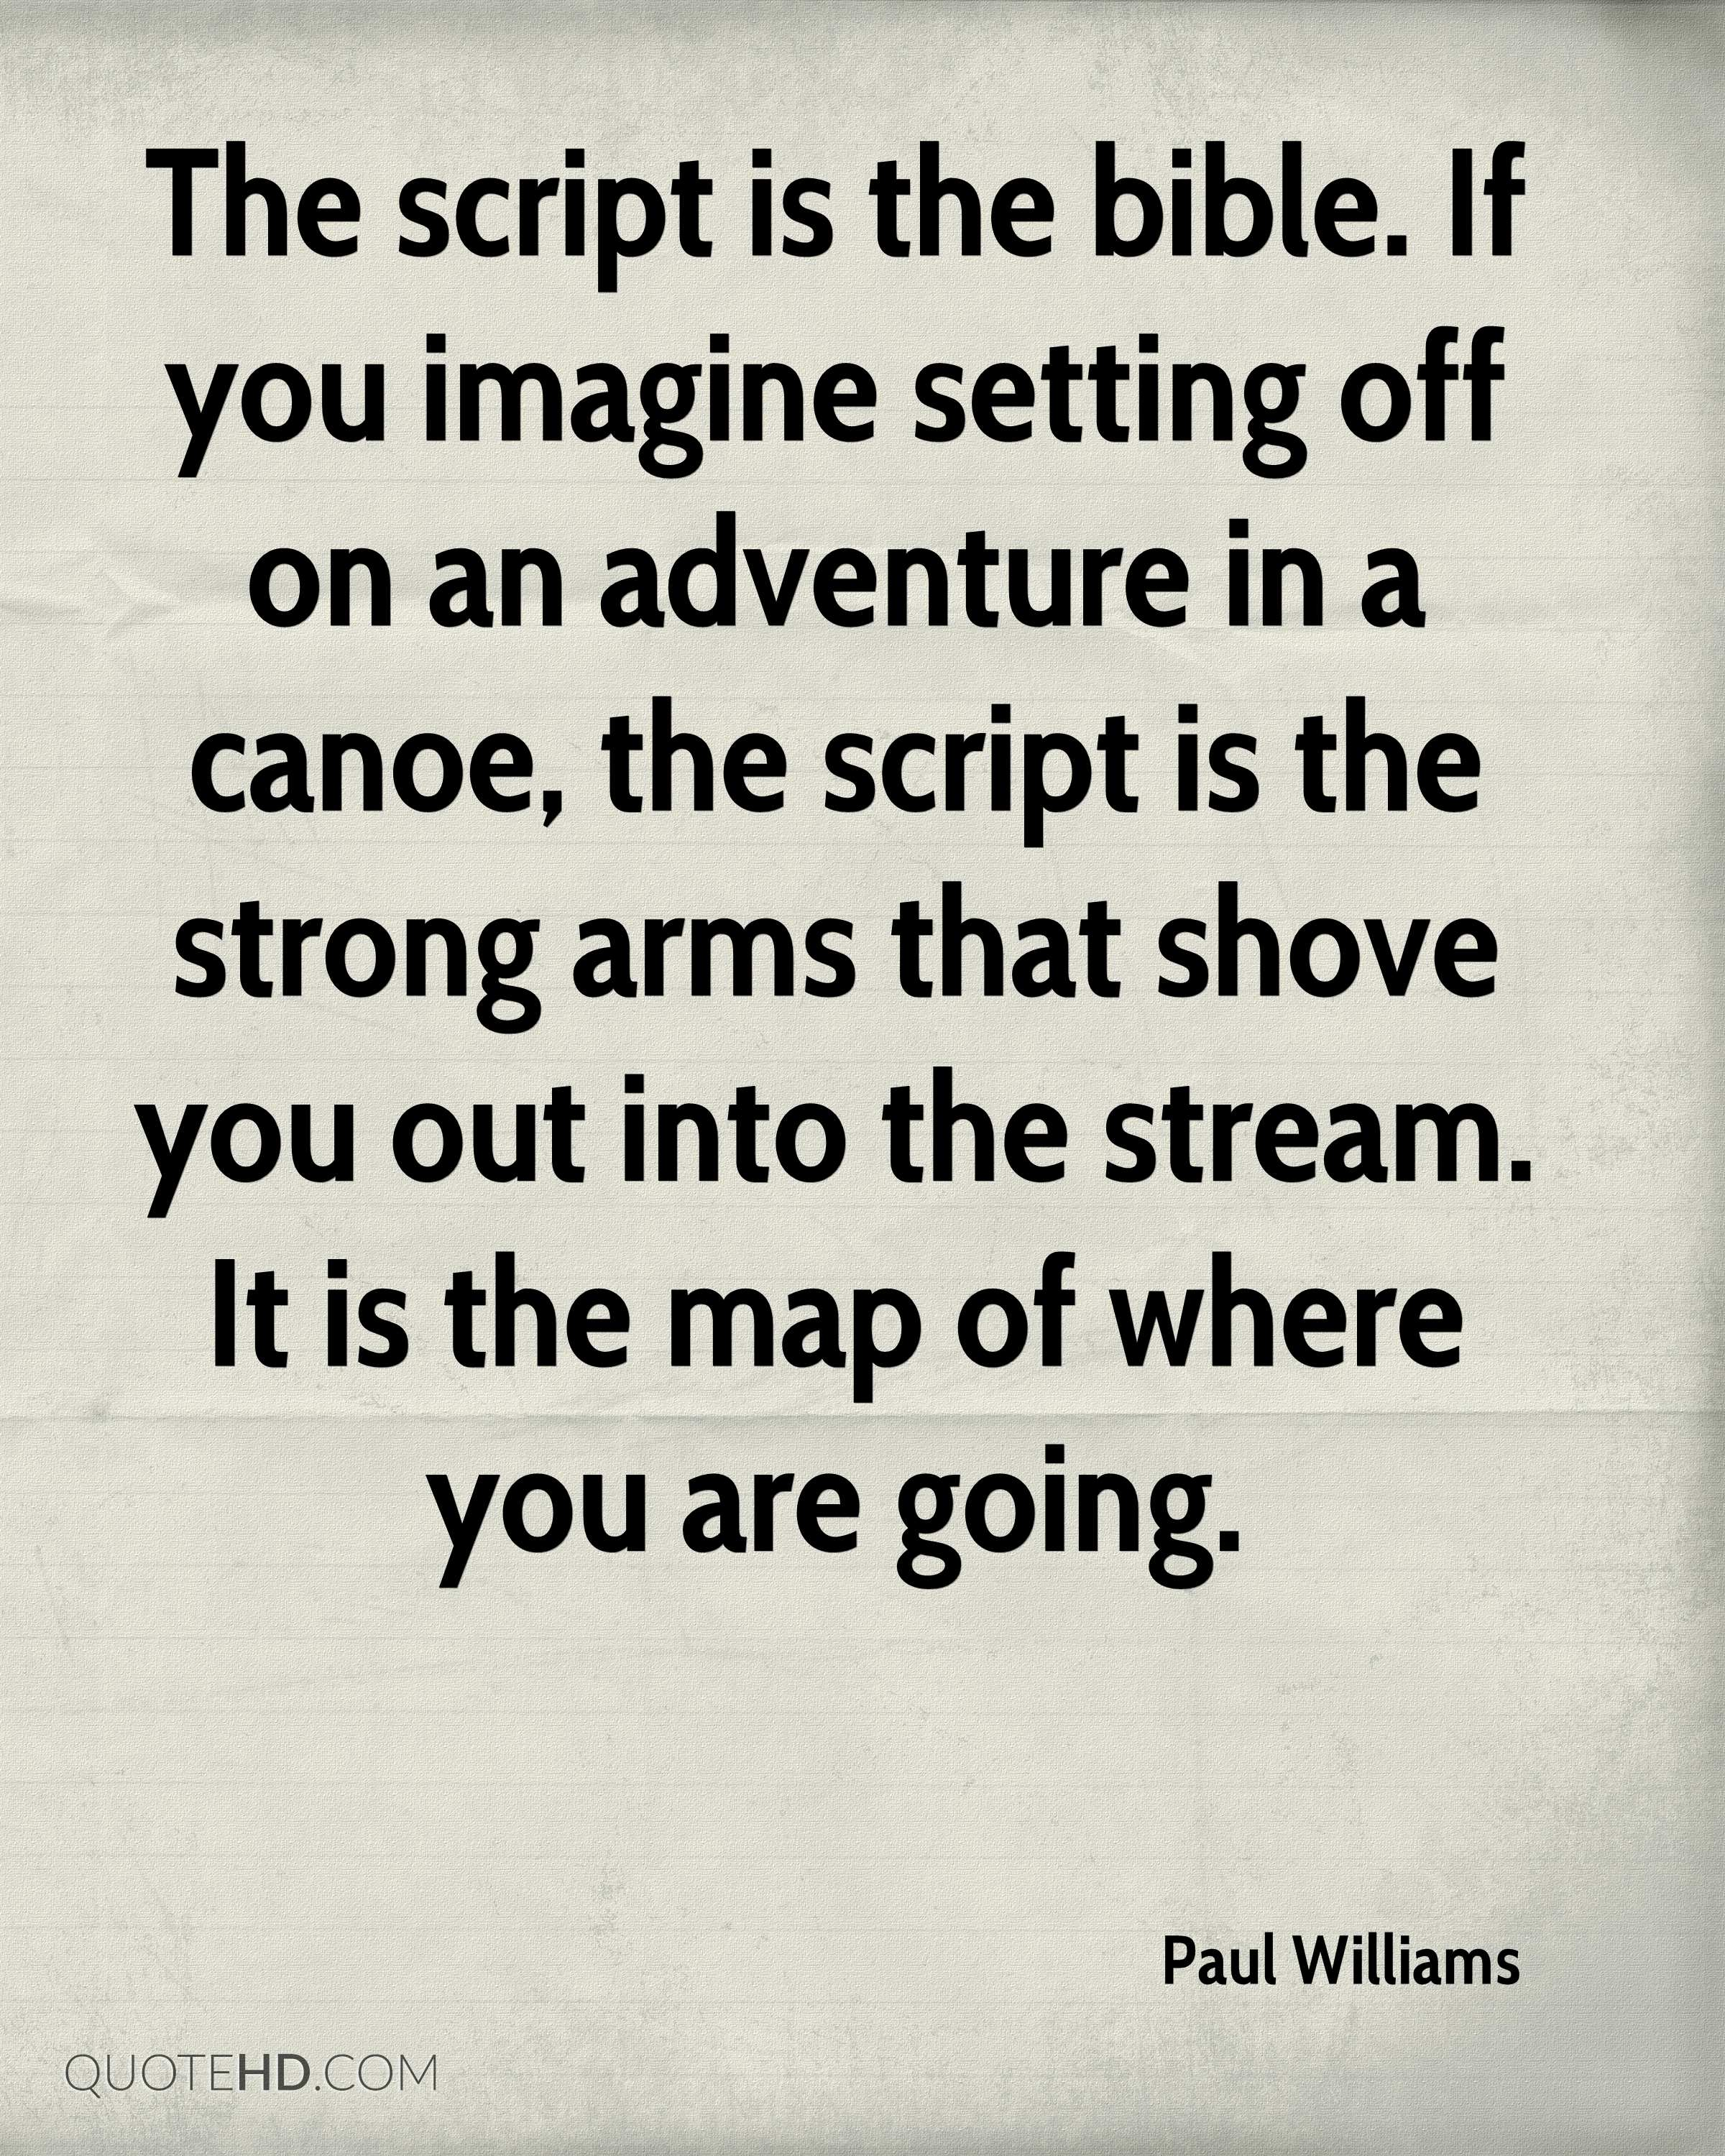 The script is the bible. If you imagine setting off on an adventure in a canoe, the script is the strong arms that shove you out into the stream. It is the map of where you are going.